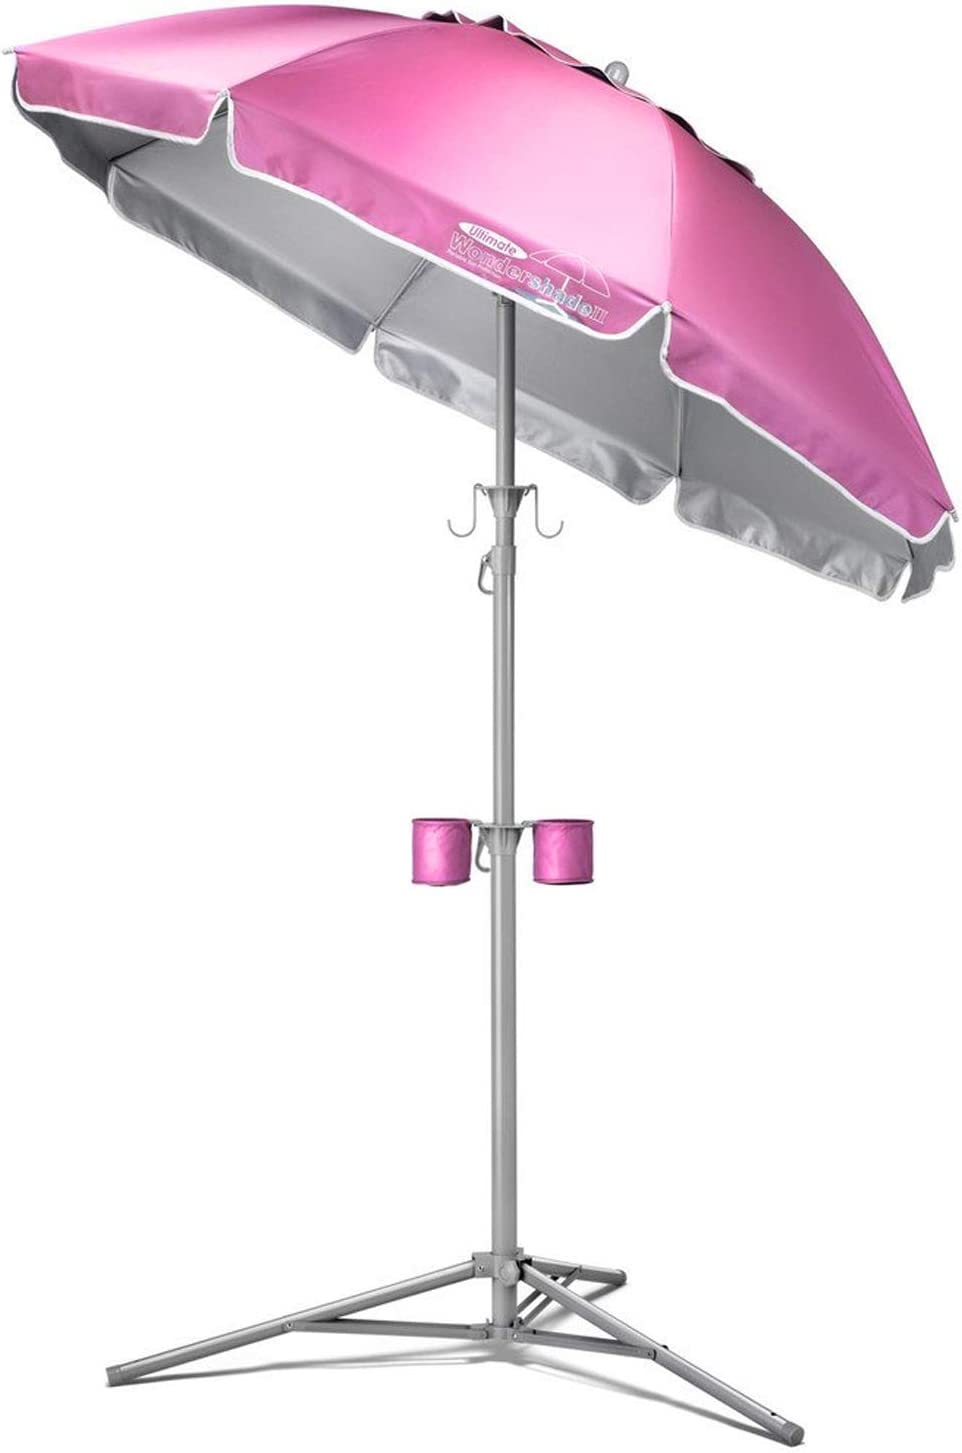 Wondershade Ultimate Portable Sun Shade Umbrella, Lightweight Adjustable Instant Sun Protection – Pink